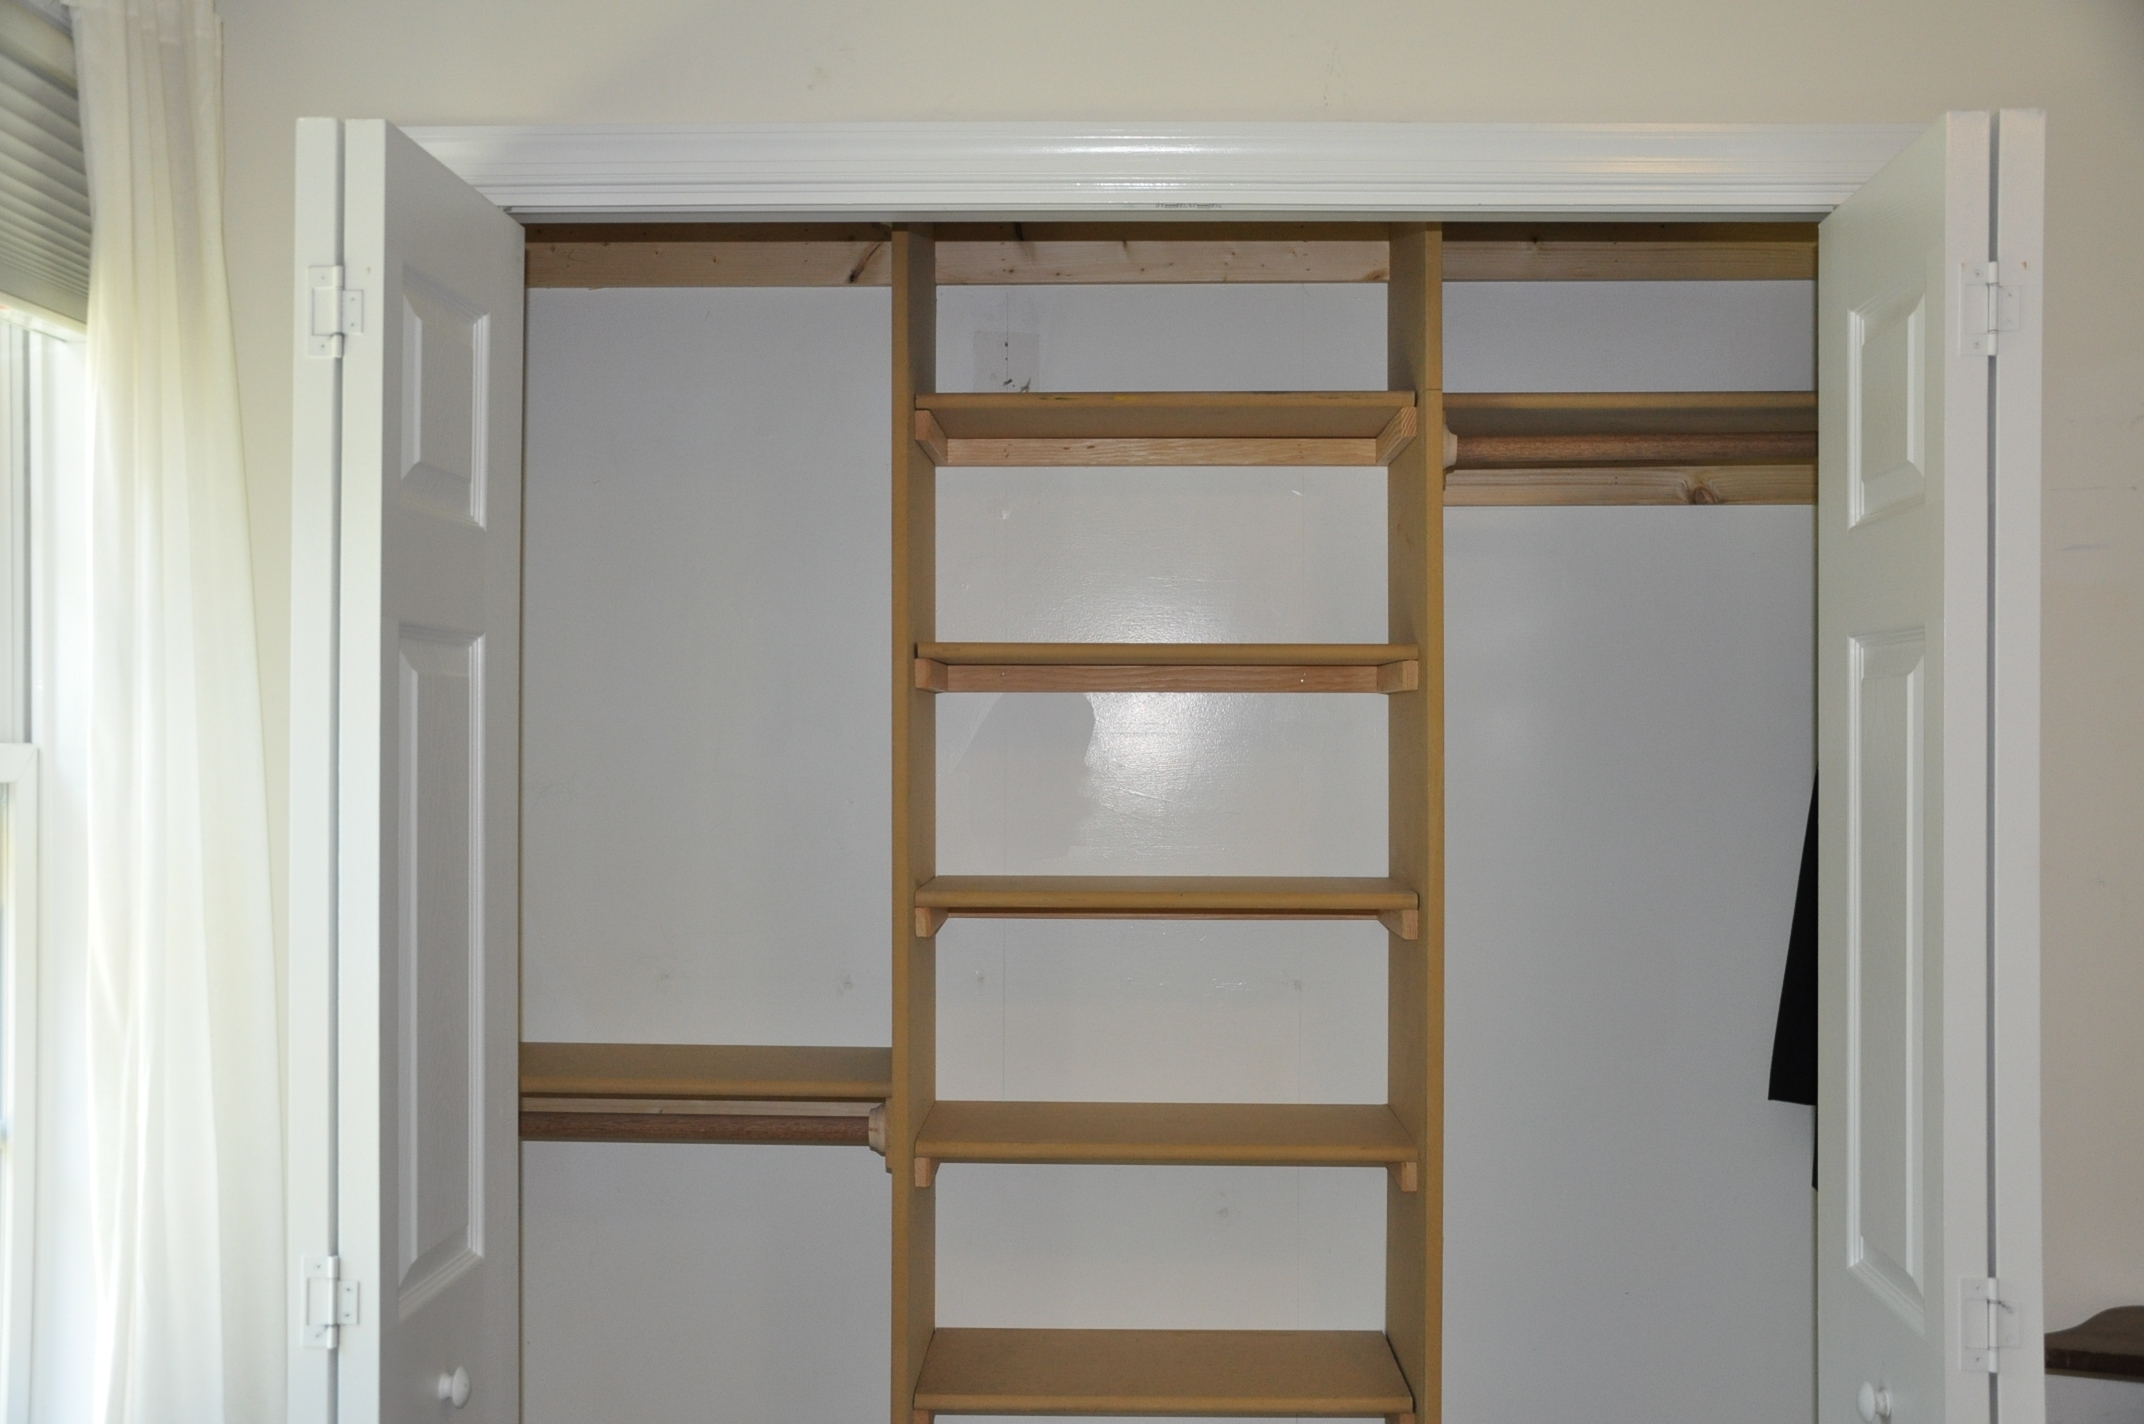 Reach In Closet Design Ideas good idea for reach in closets put up closet rods on the sides if Small Bedroom Closet Design Remodel Interior Planning House Ideas